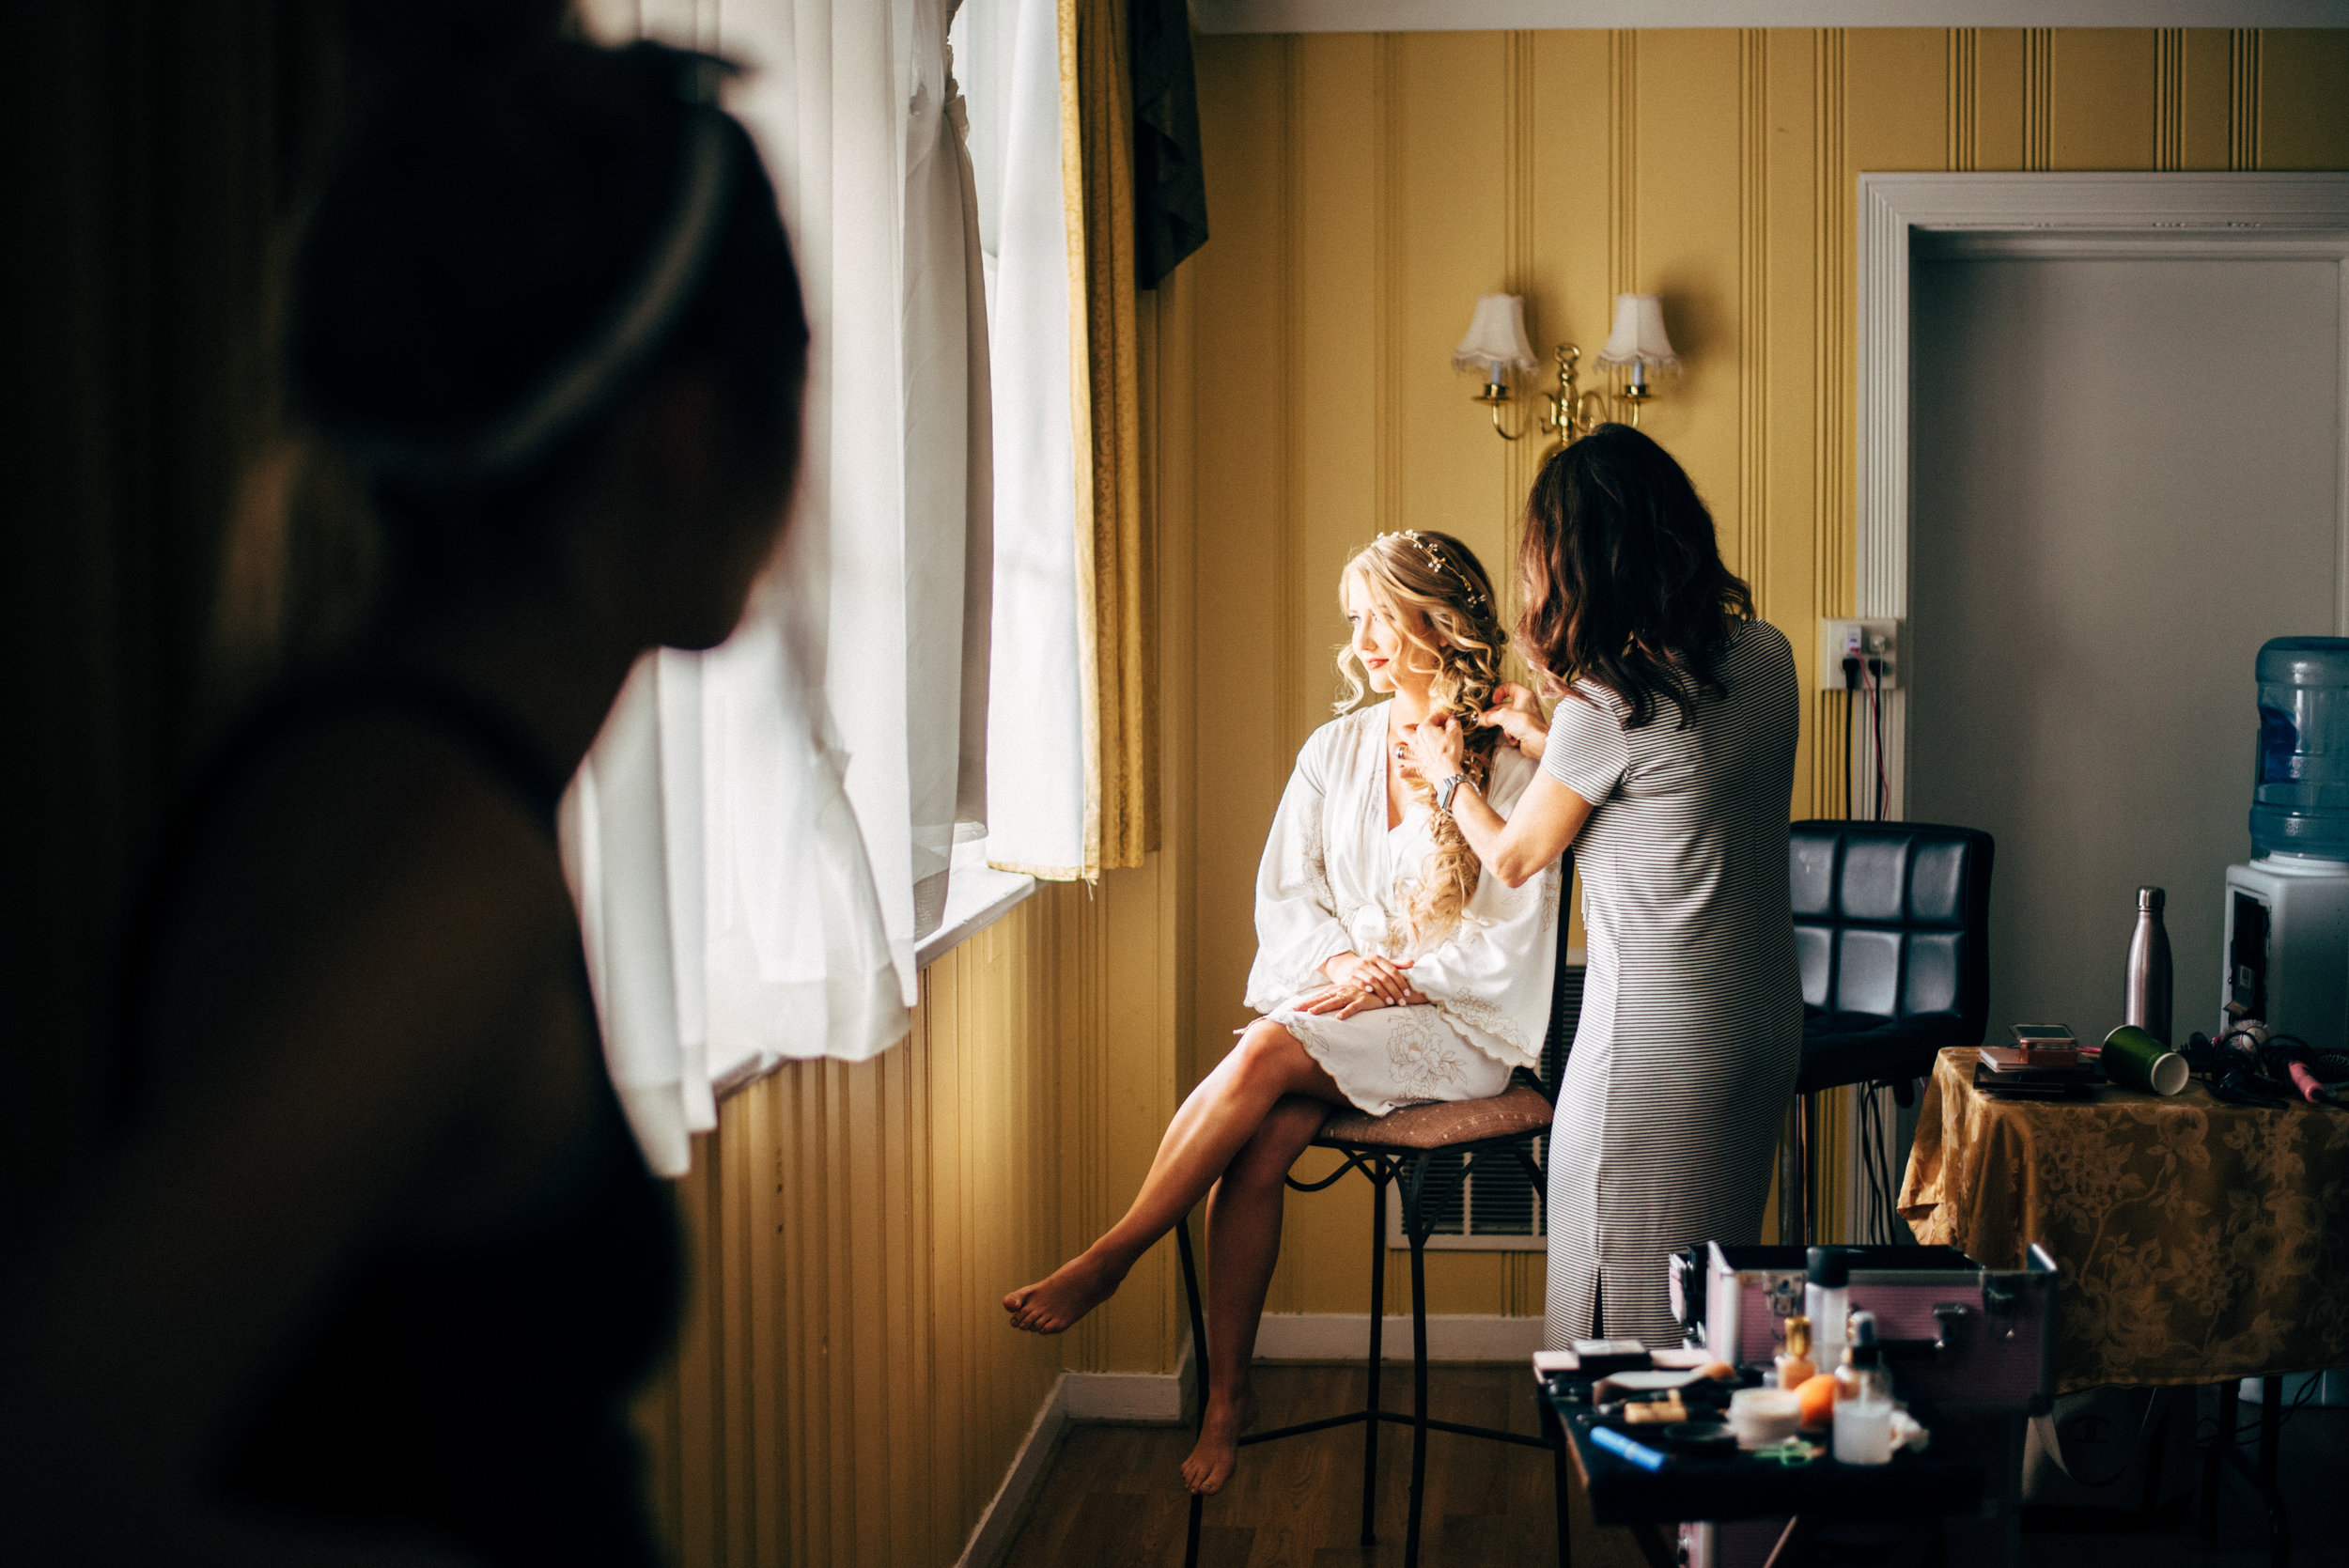 bride looking out the window while hairstylist finalizes her long hair before the wedding